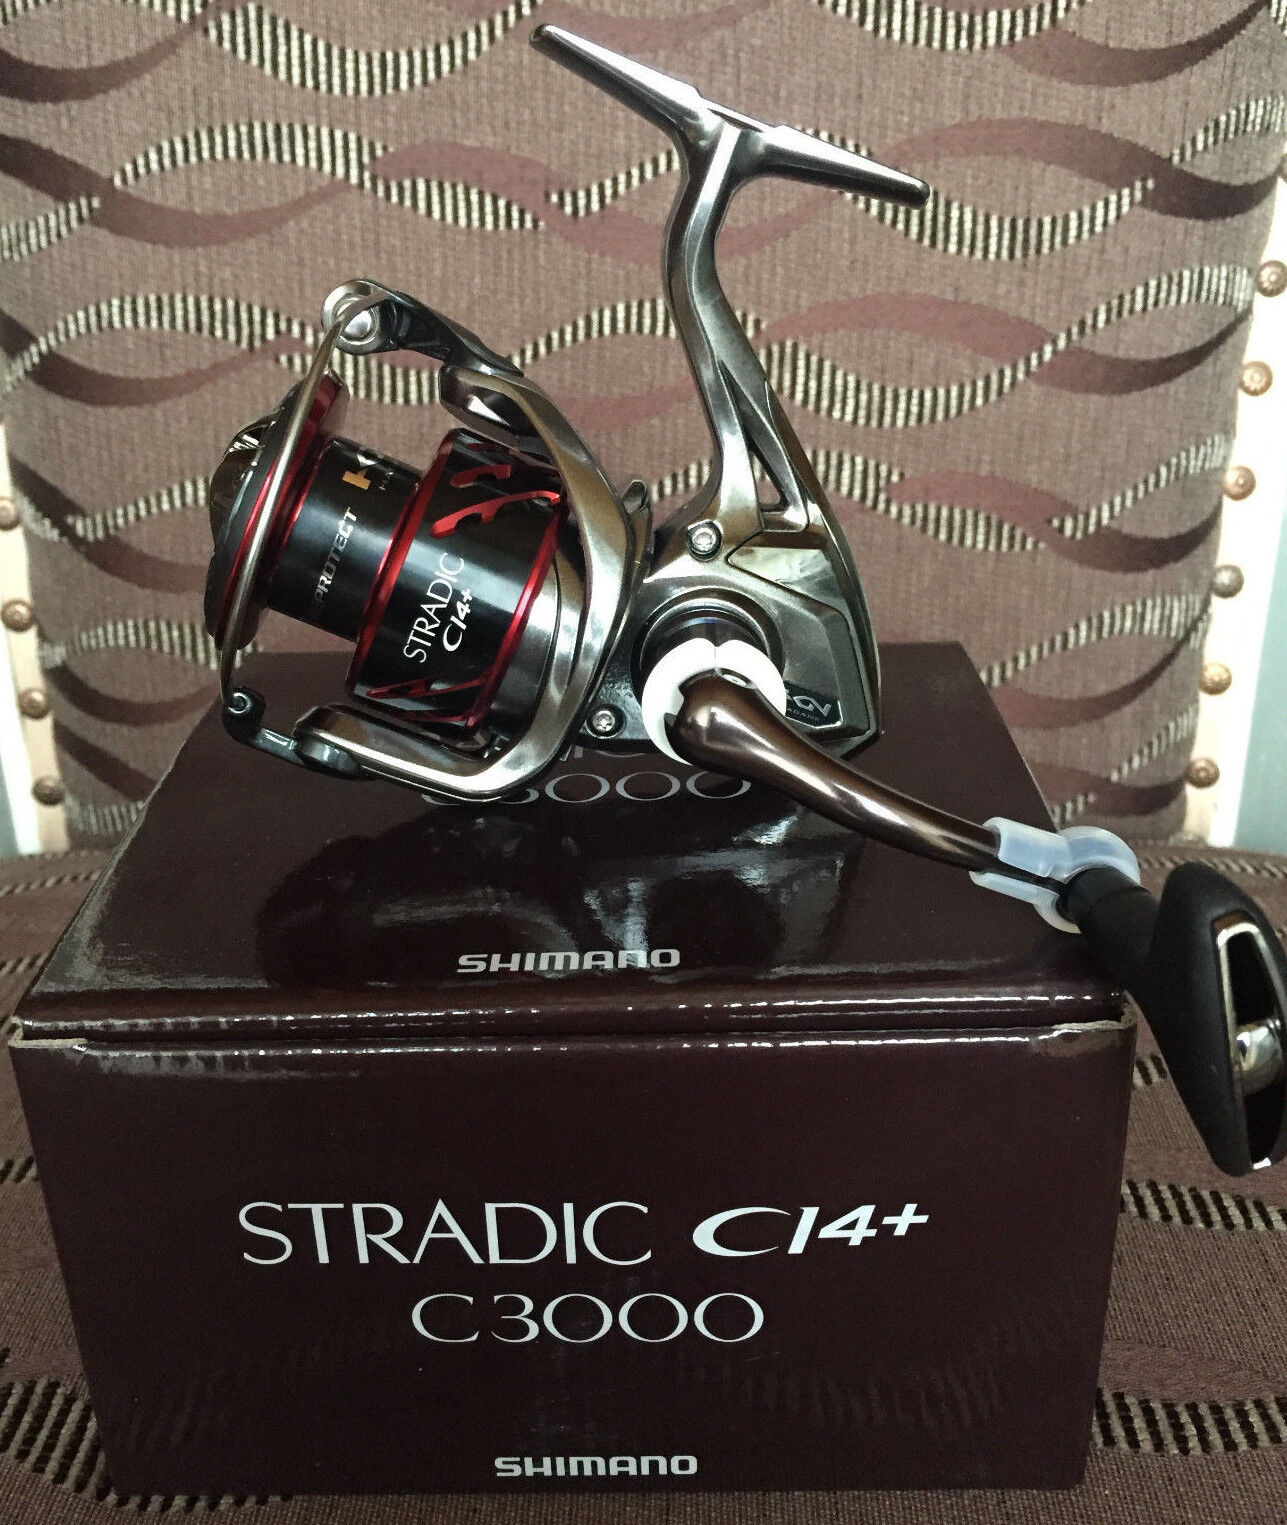 2500 FB SPINNING REEL**FREE USPS 1-3 DAYS DELIVERY** NEW SHIMANO STRADIC CI4